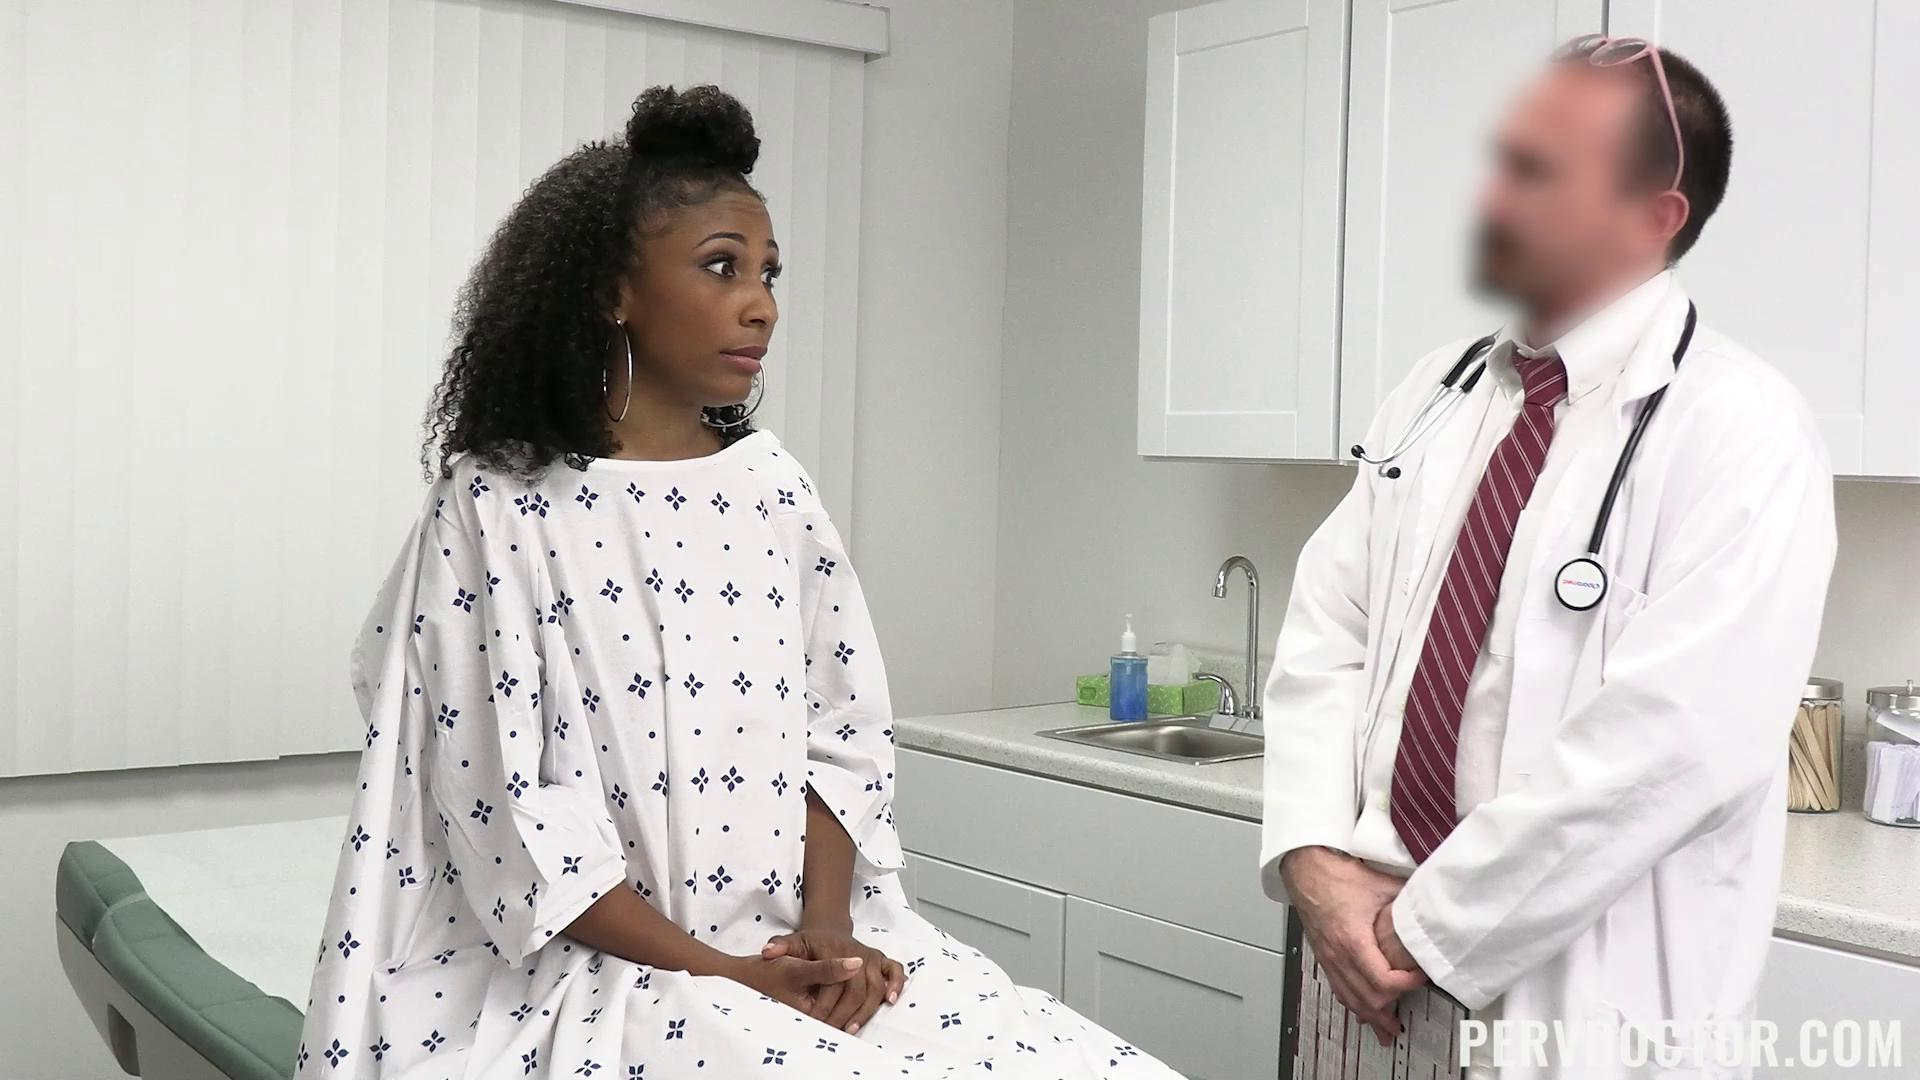 [PervDoctor] Olivia Jayy (Doctors Orders / 12.20.2020)